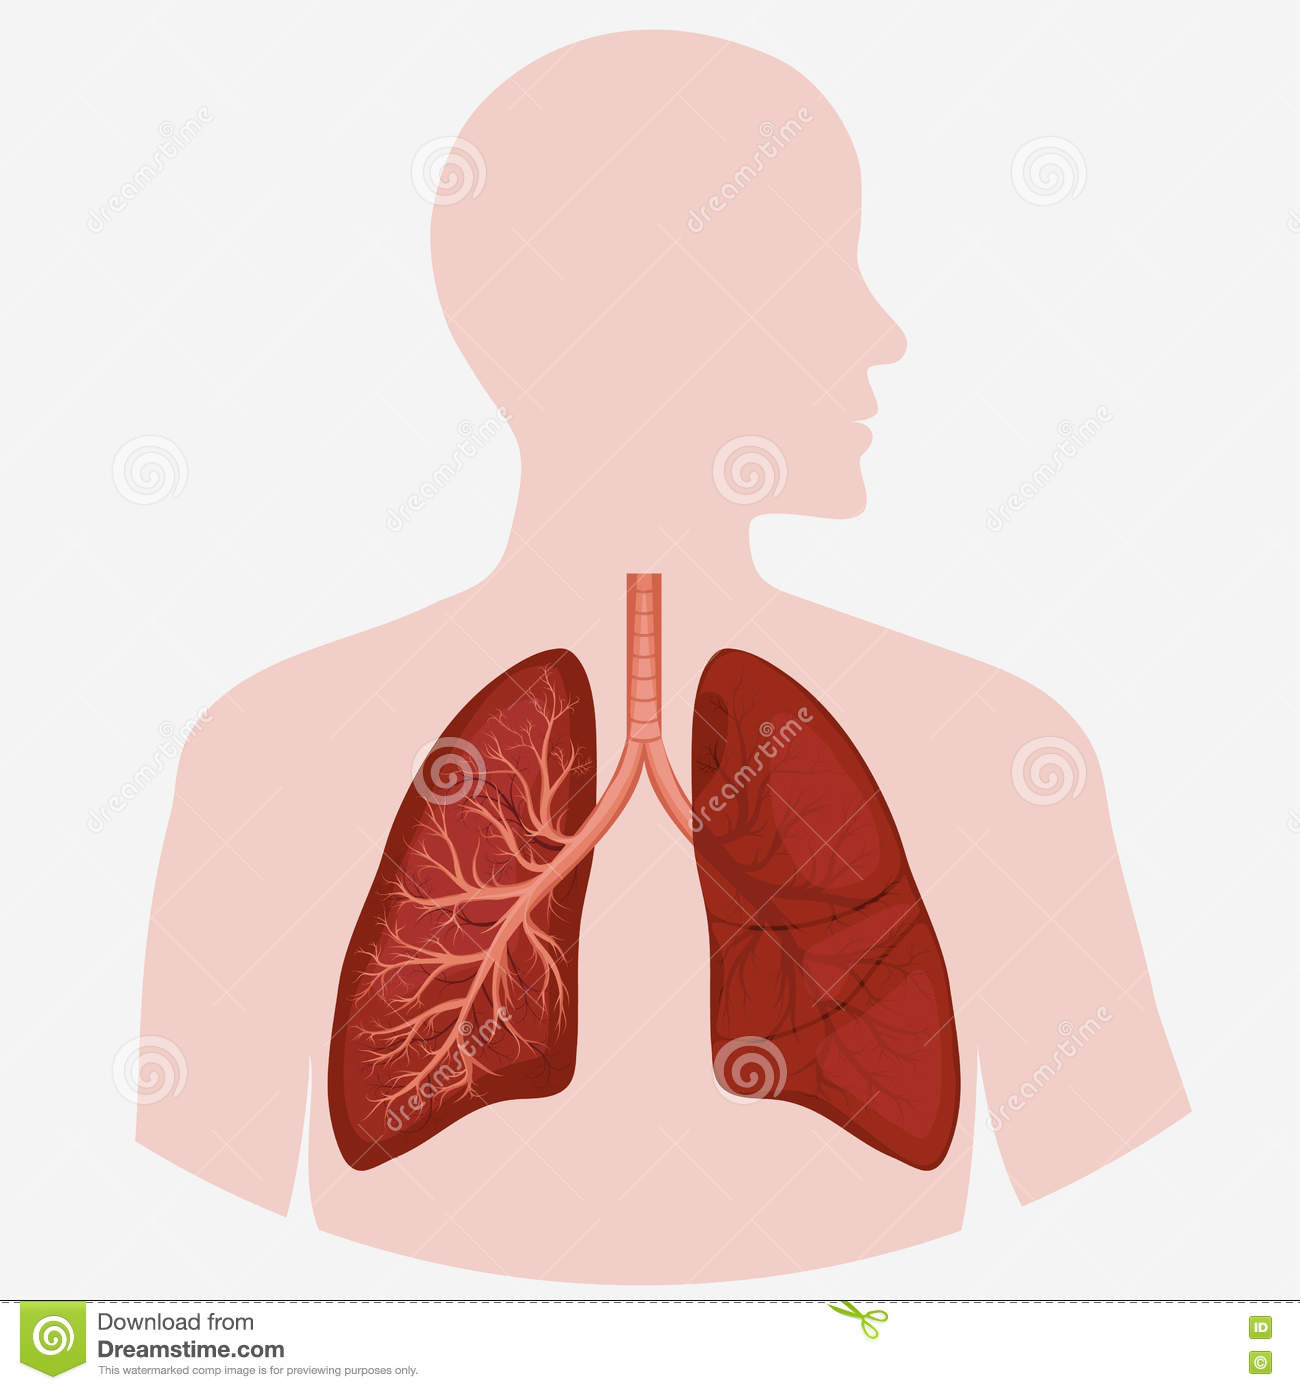 lungs human anatomy diagram amp sub wiring pneumonia cartoons illustrations and vector stock images